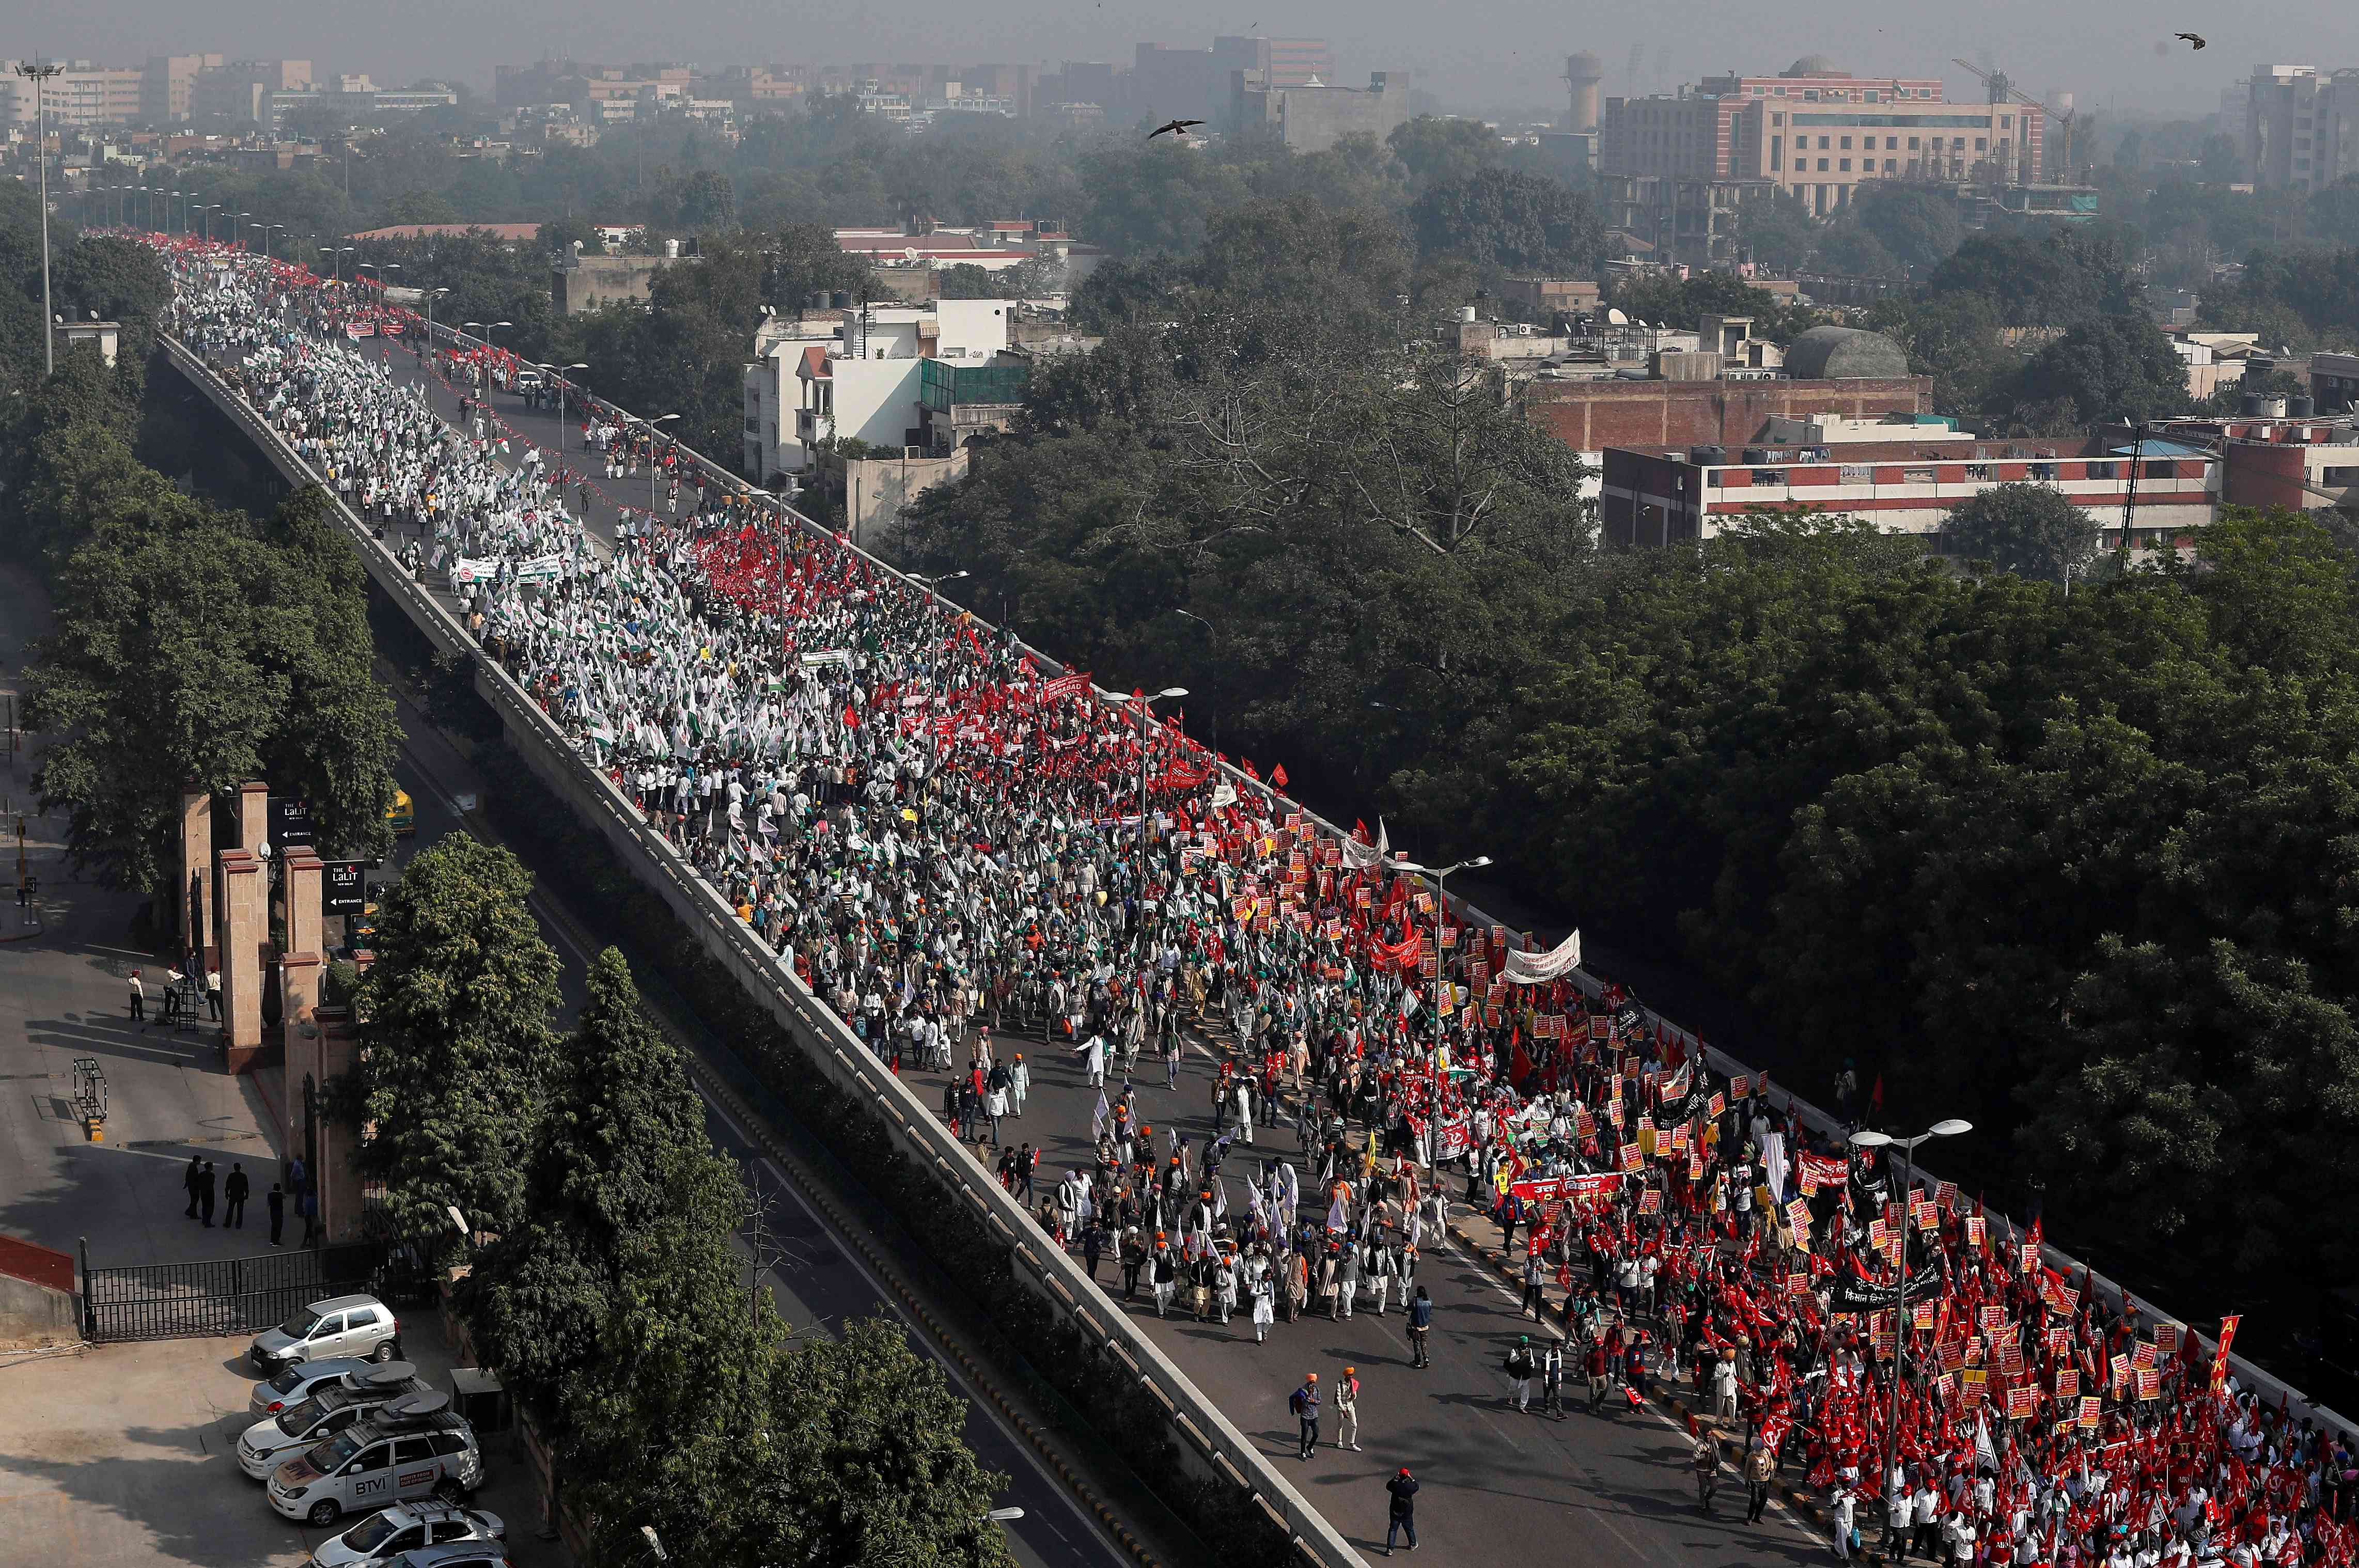 Farmers march towards Parliament House in New Delhi on Friday. (Photo credit: Adnan Abidi/Reuters).